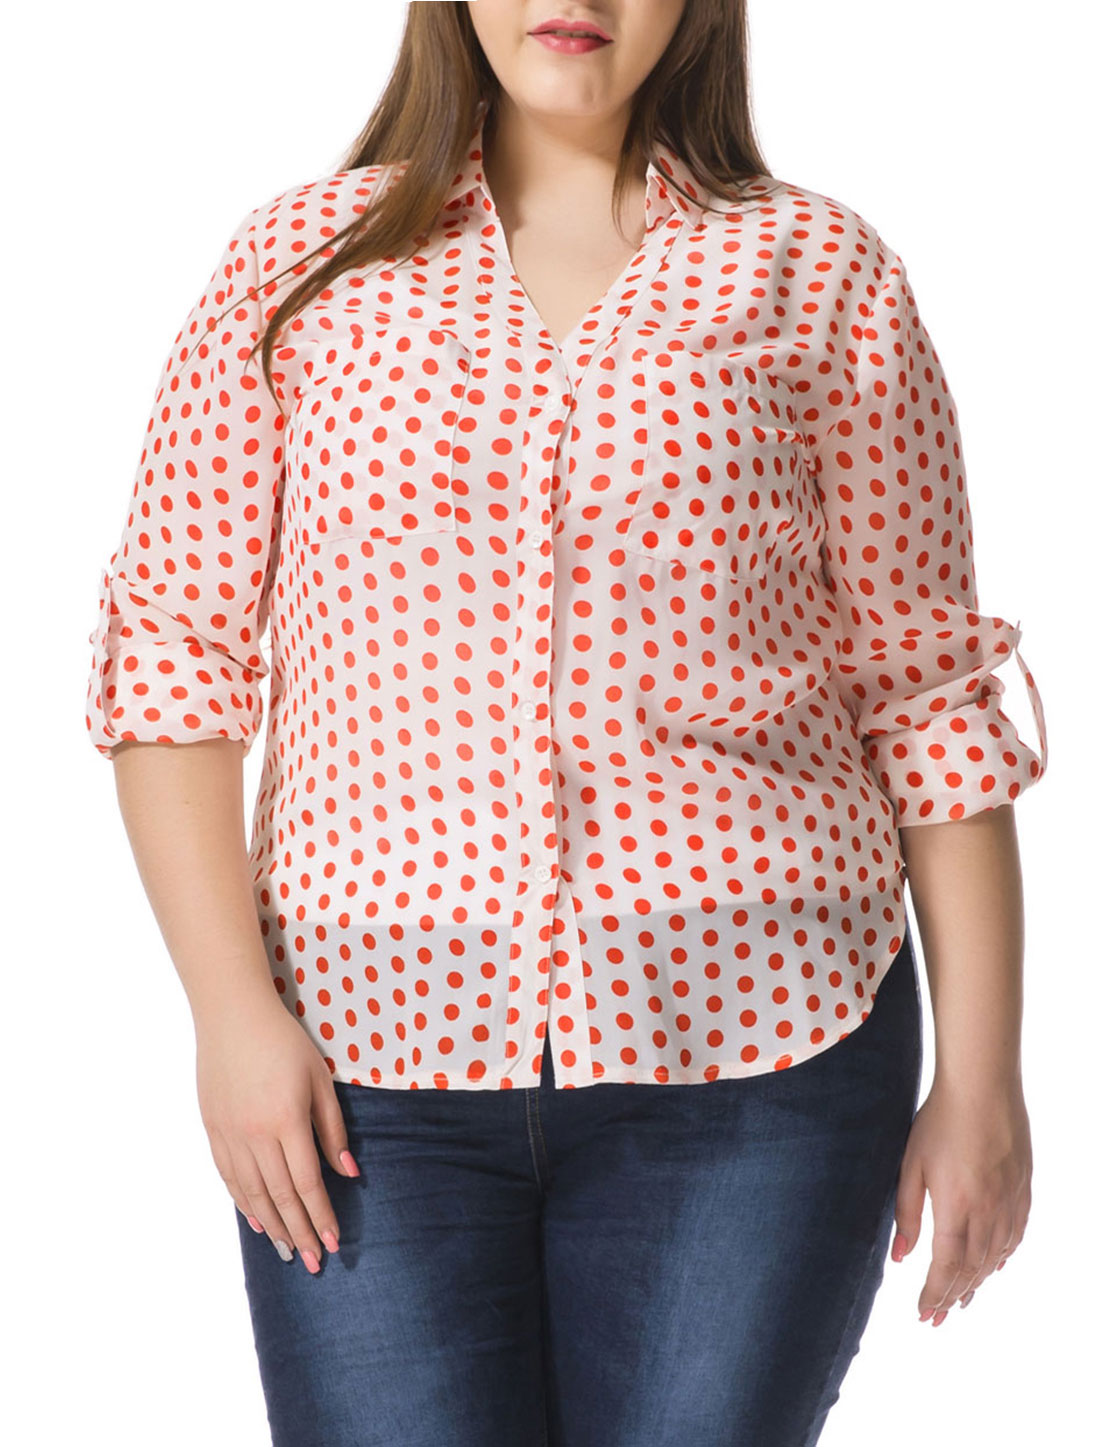 Unique Bargains Women's Plus Size Polka Dots Convertible Sleeve Portofino Shirt White (Size 3X)